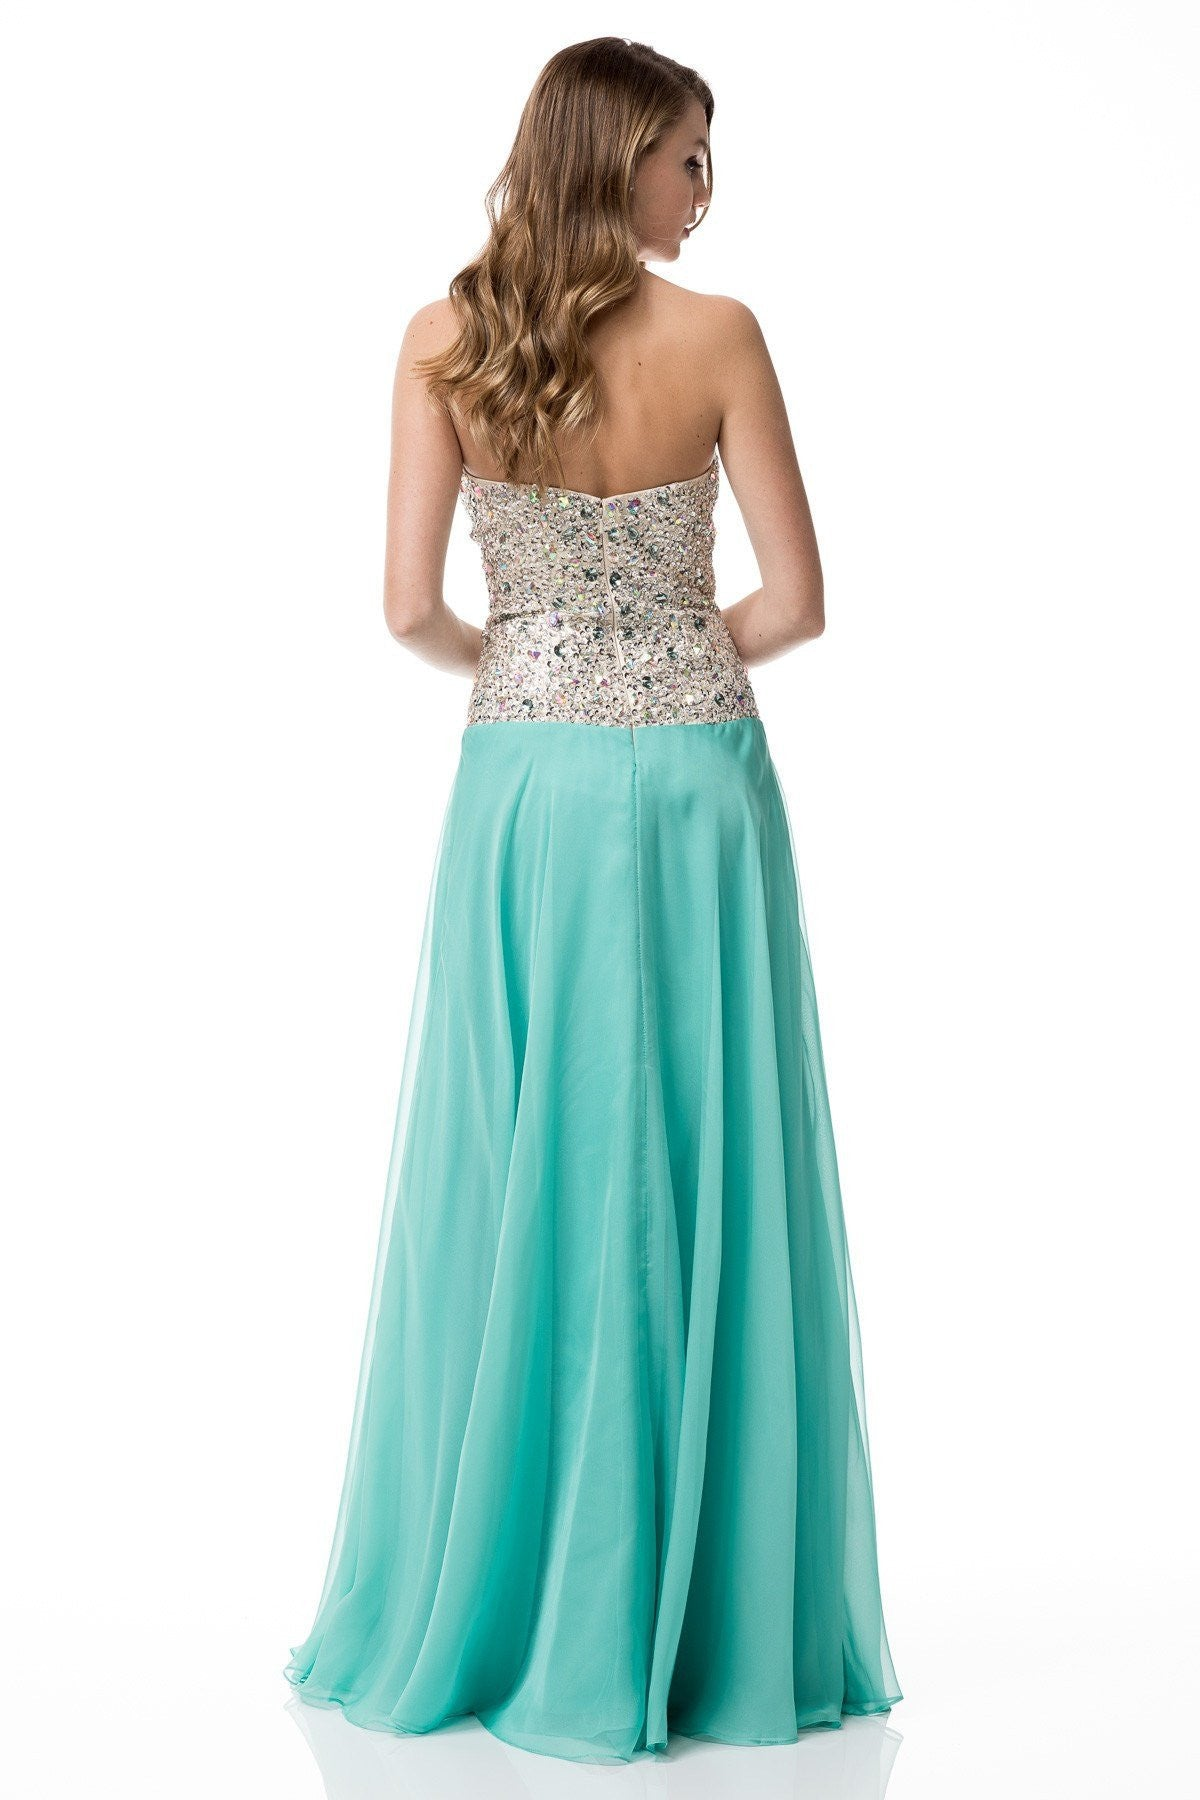 Prom dress bc - Prom dress style